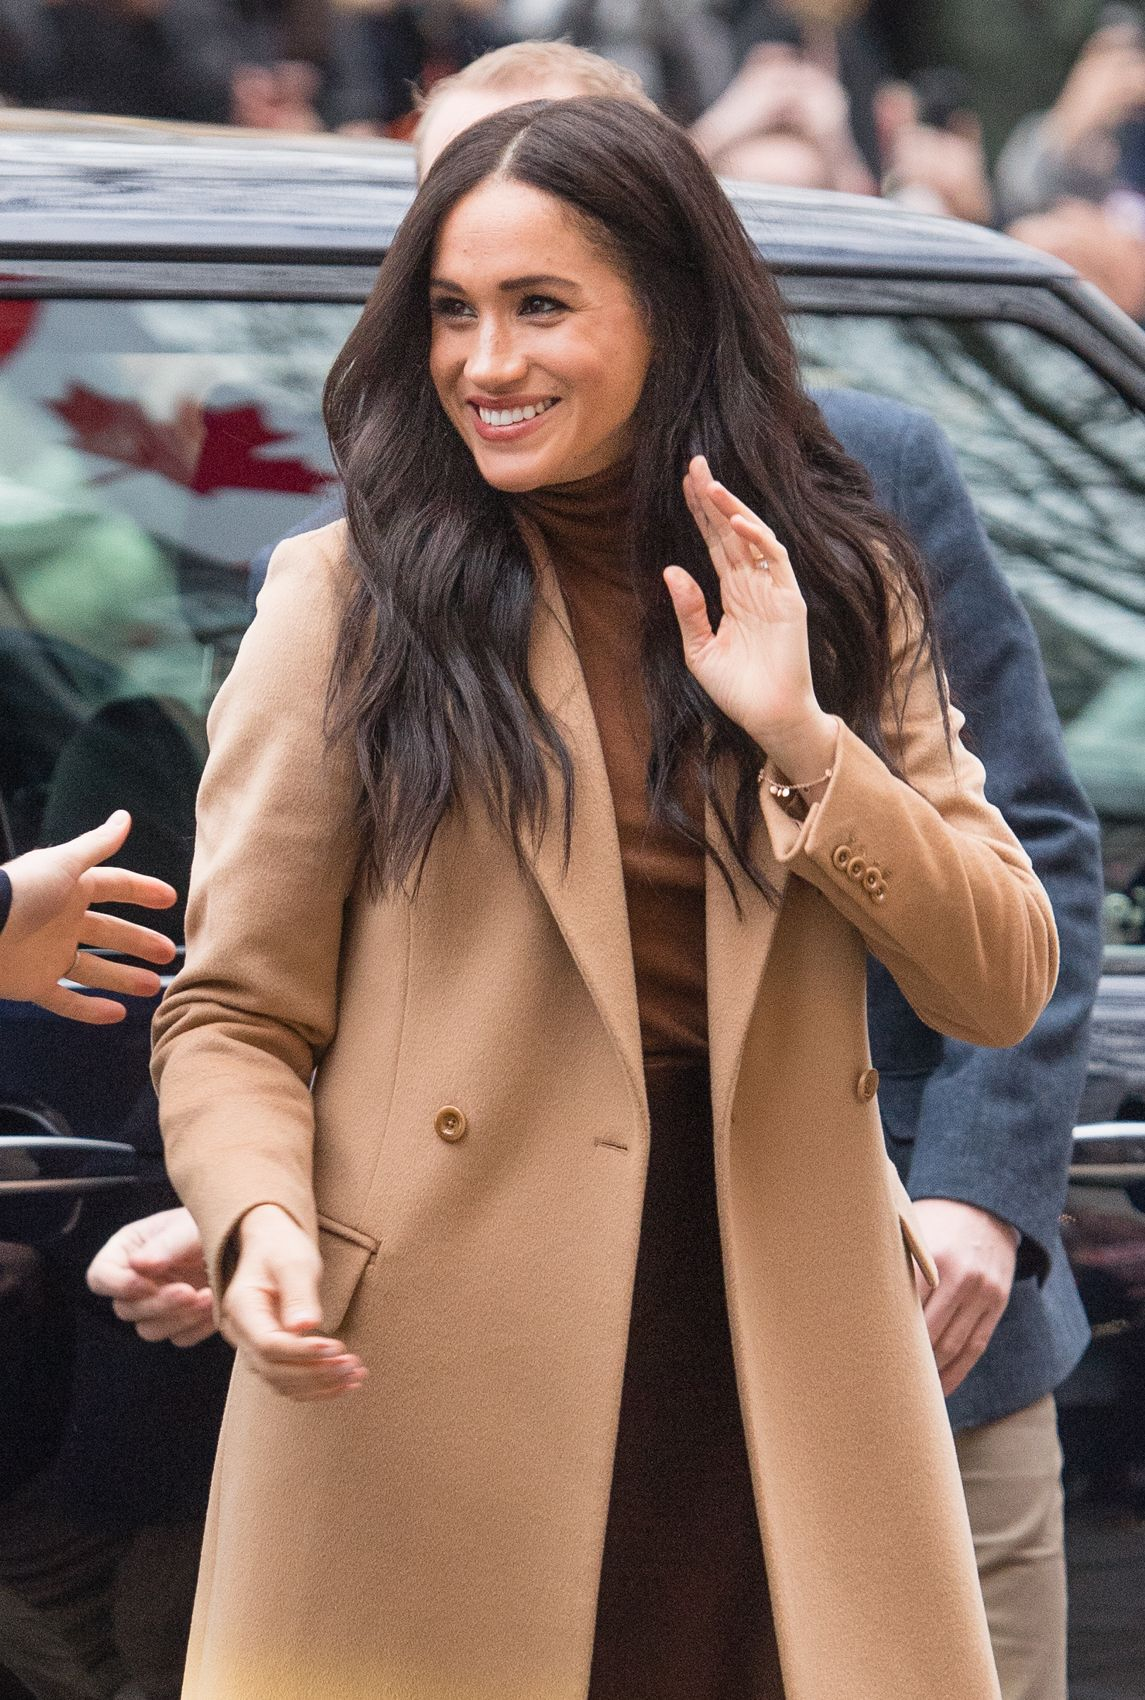 Meghan Markle has reportedly started talks with big fashion brands including Givenchy